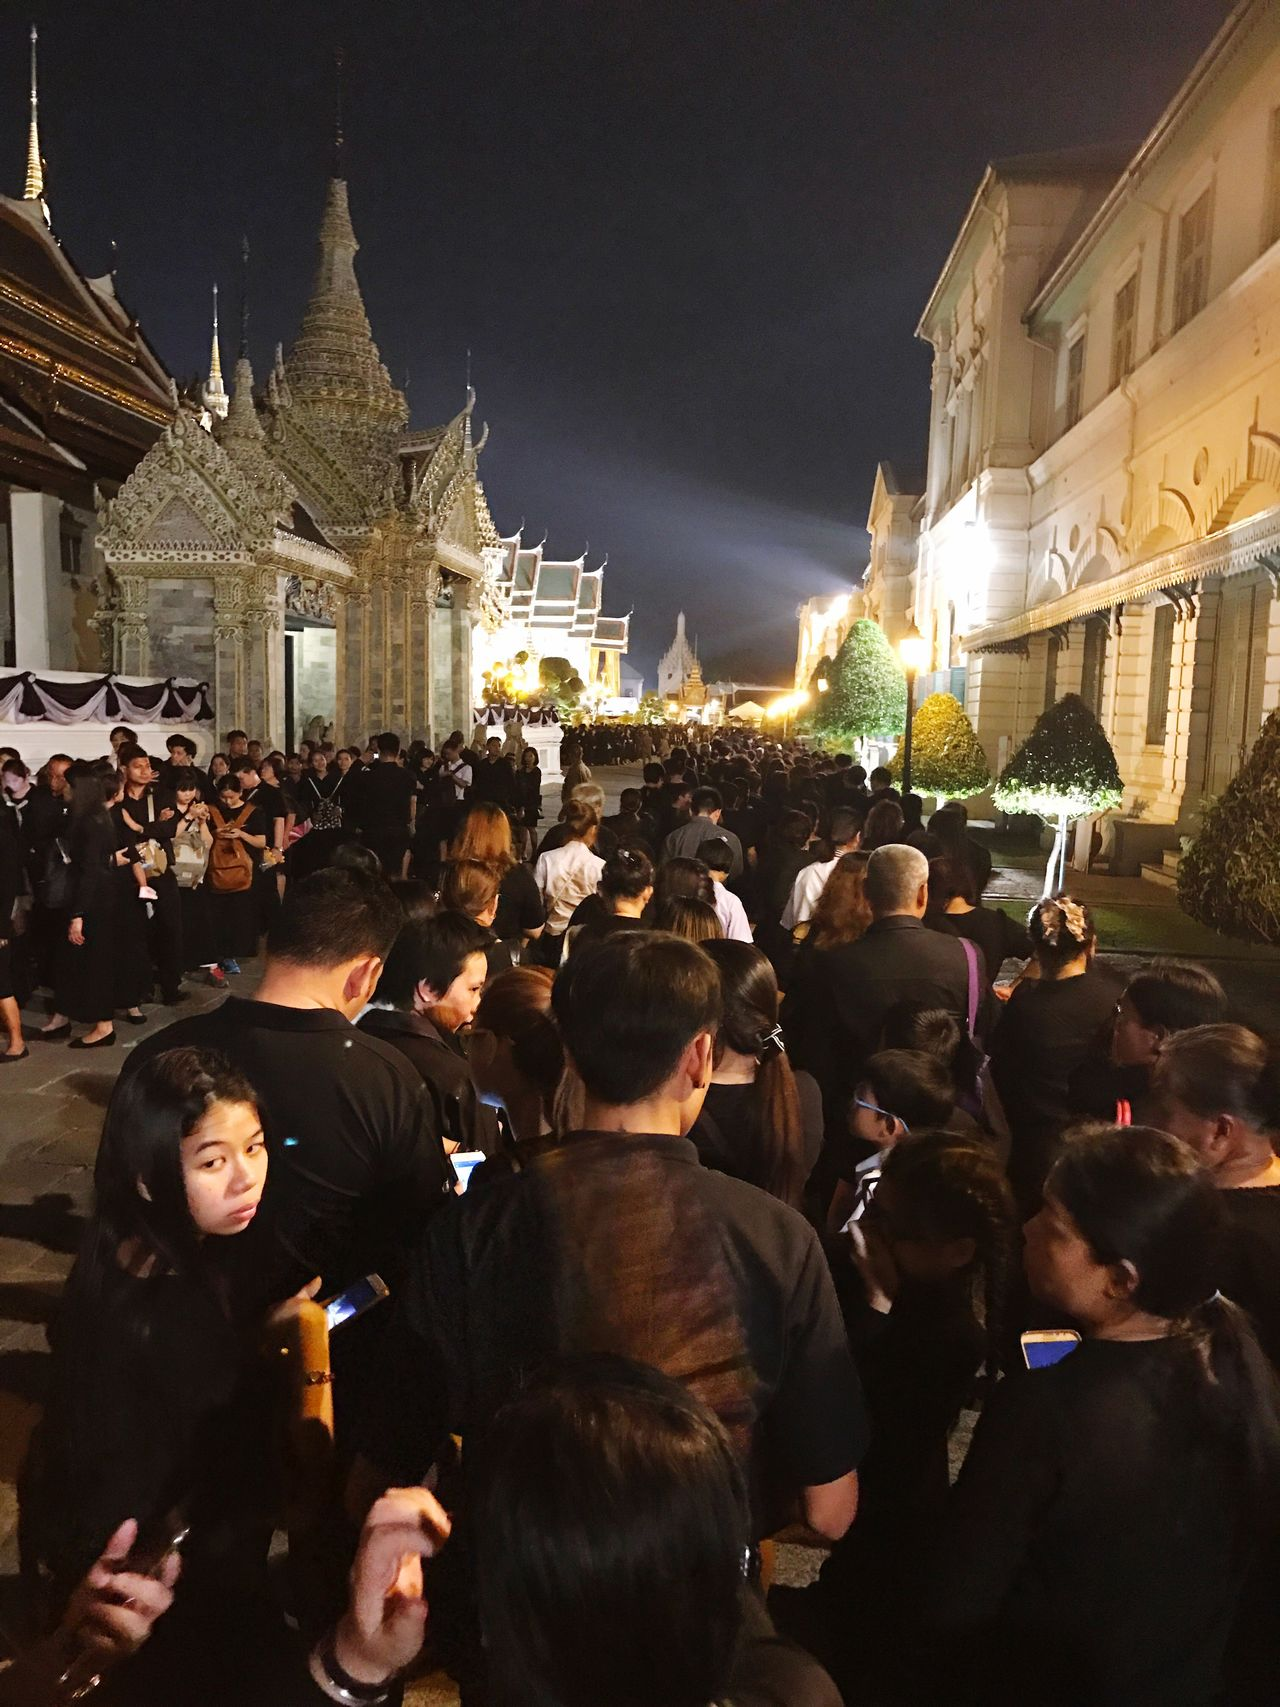 Respect King Of Thailand Large Group Of People Building Exterior Architecture Built Structure Religion Travel Destinations Spirituality Men Crowd Place Of Worship Real People Women Outdoors Night Adults Only People Adult